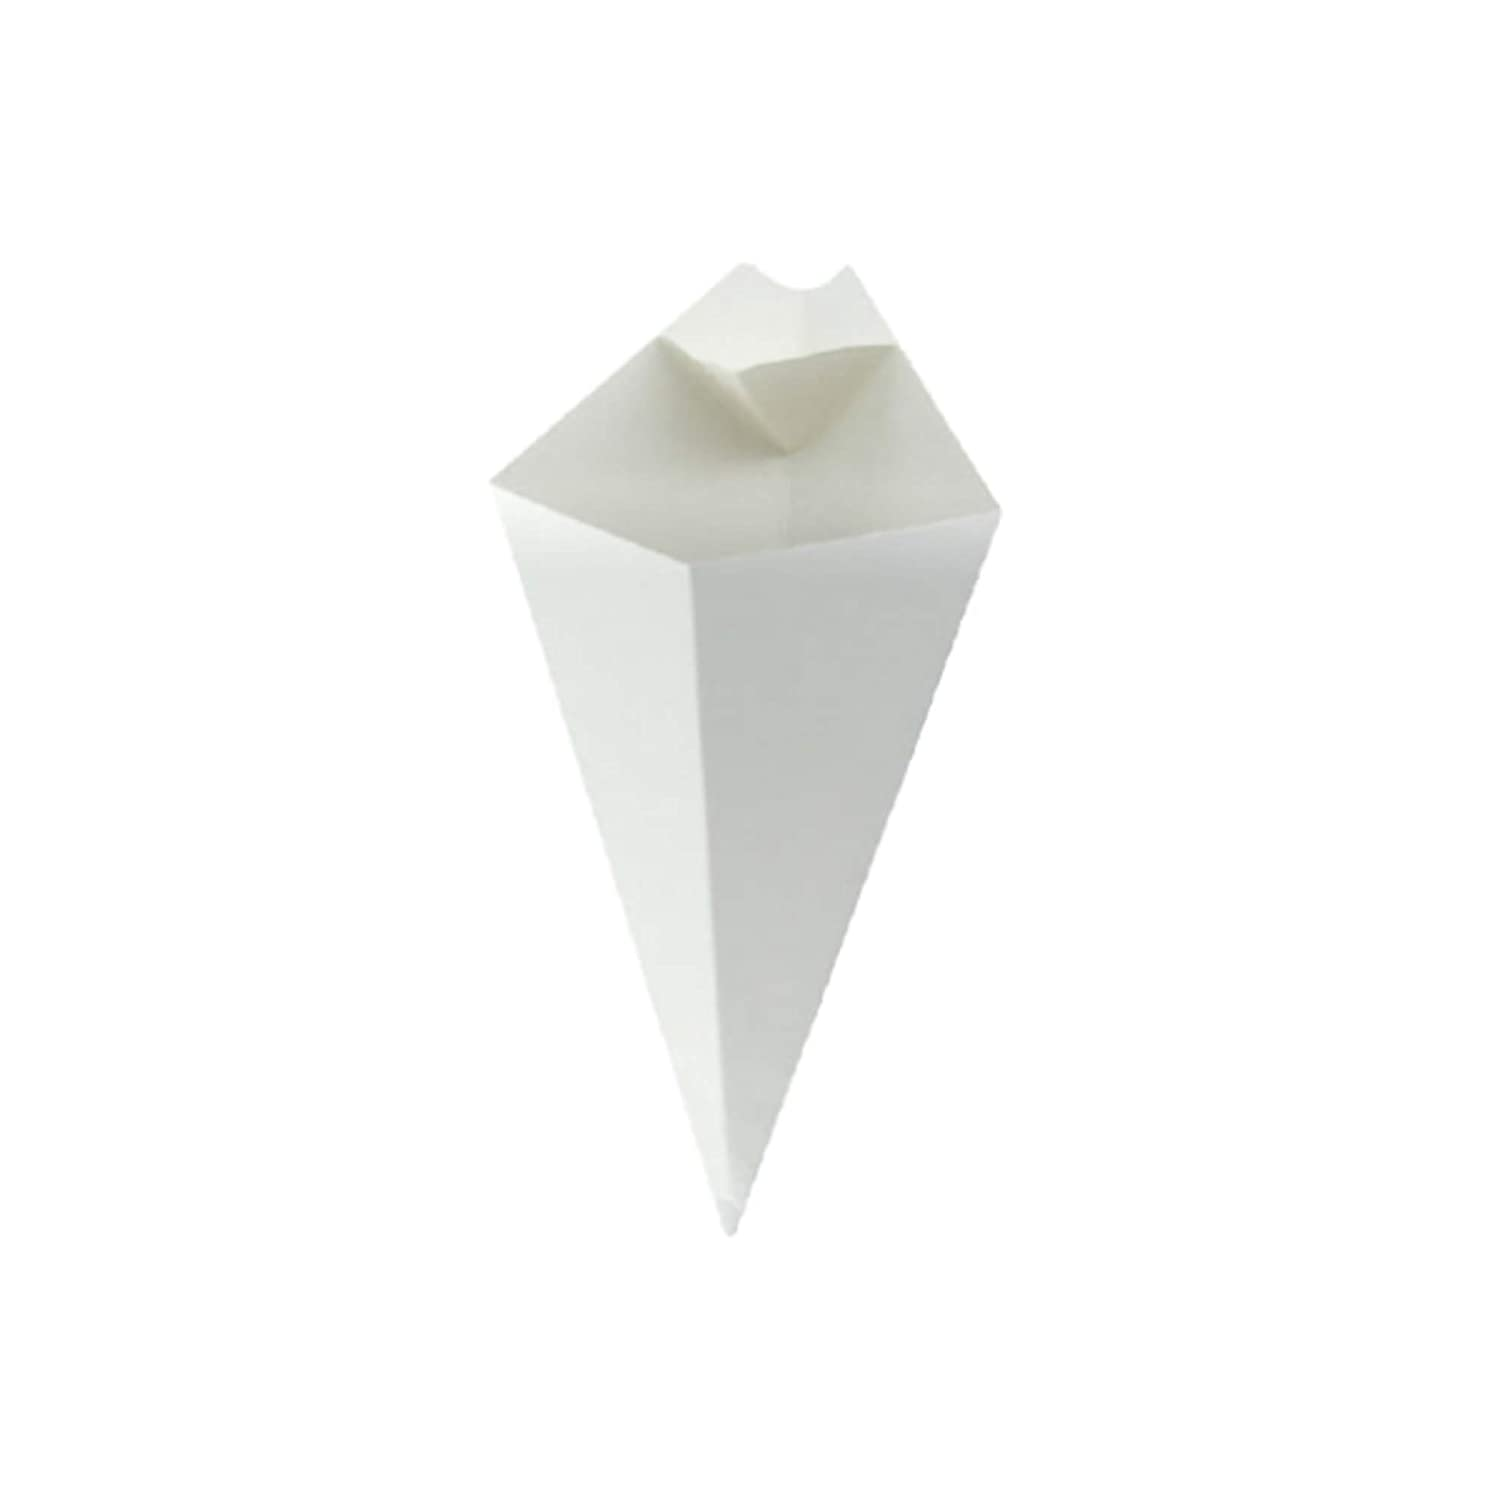 PacknWood White Paper Cones with Built in Dipping Sauce Compartment, 7.5